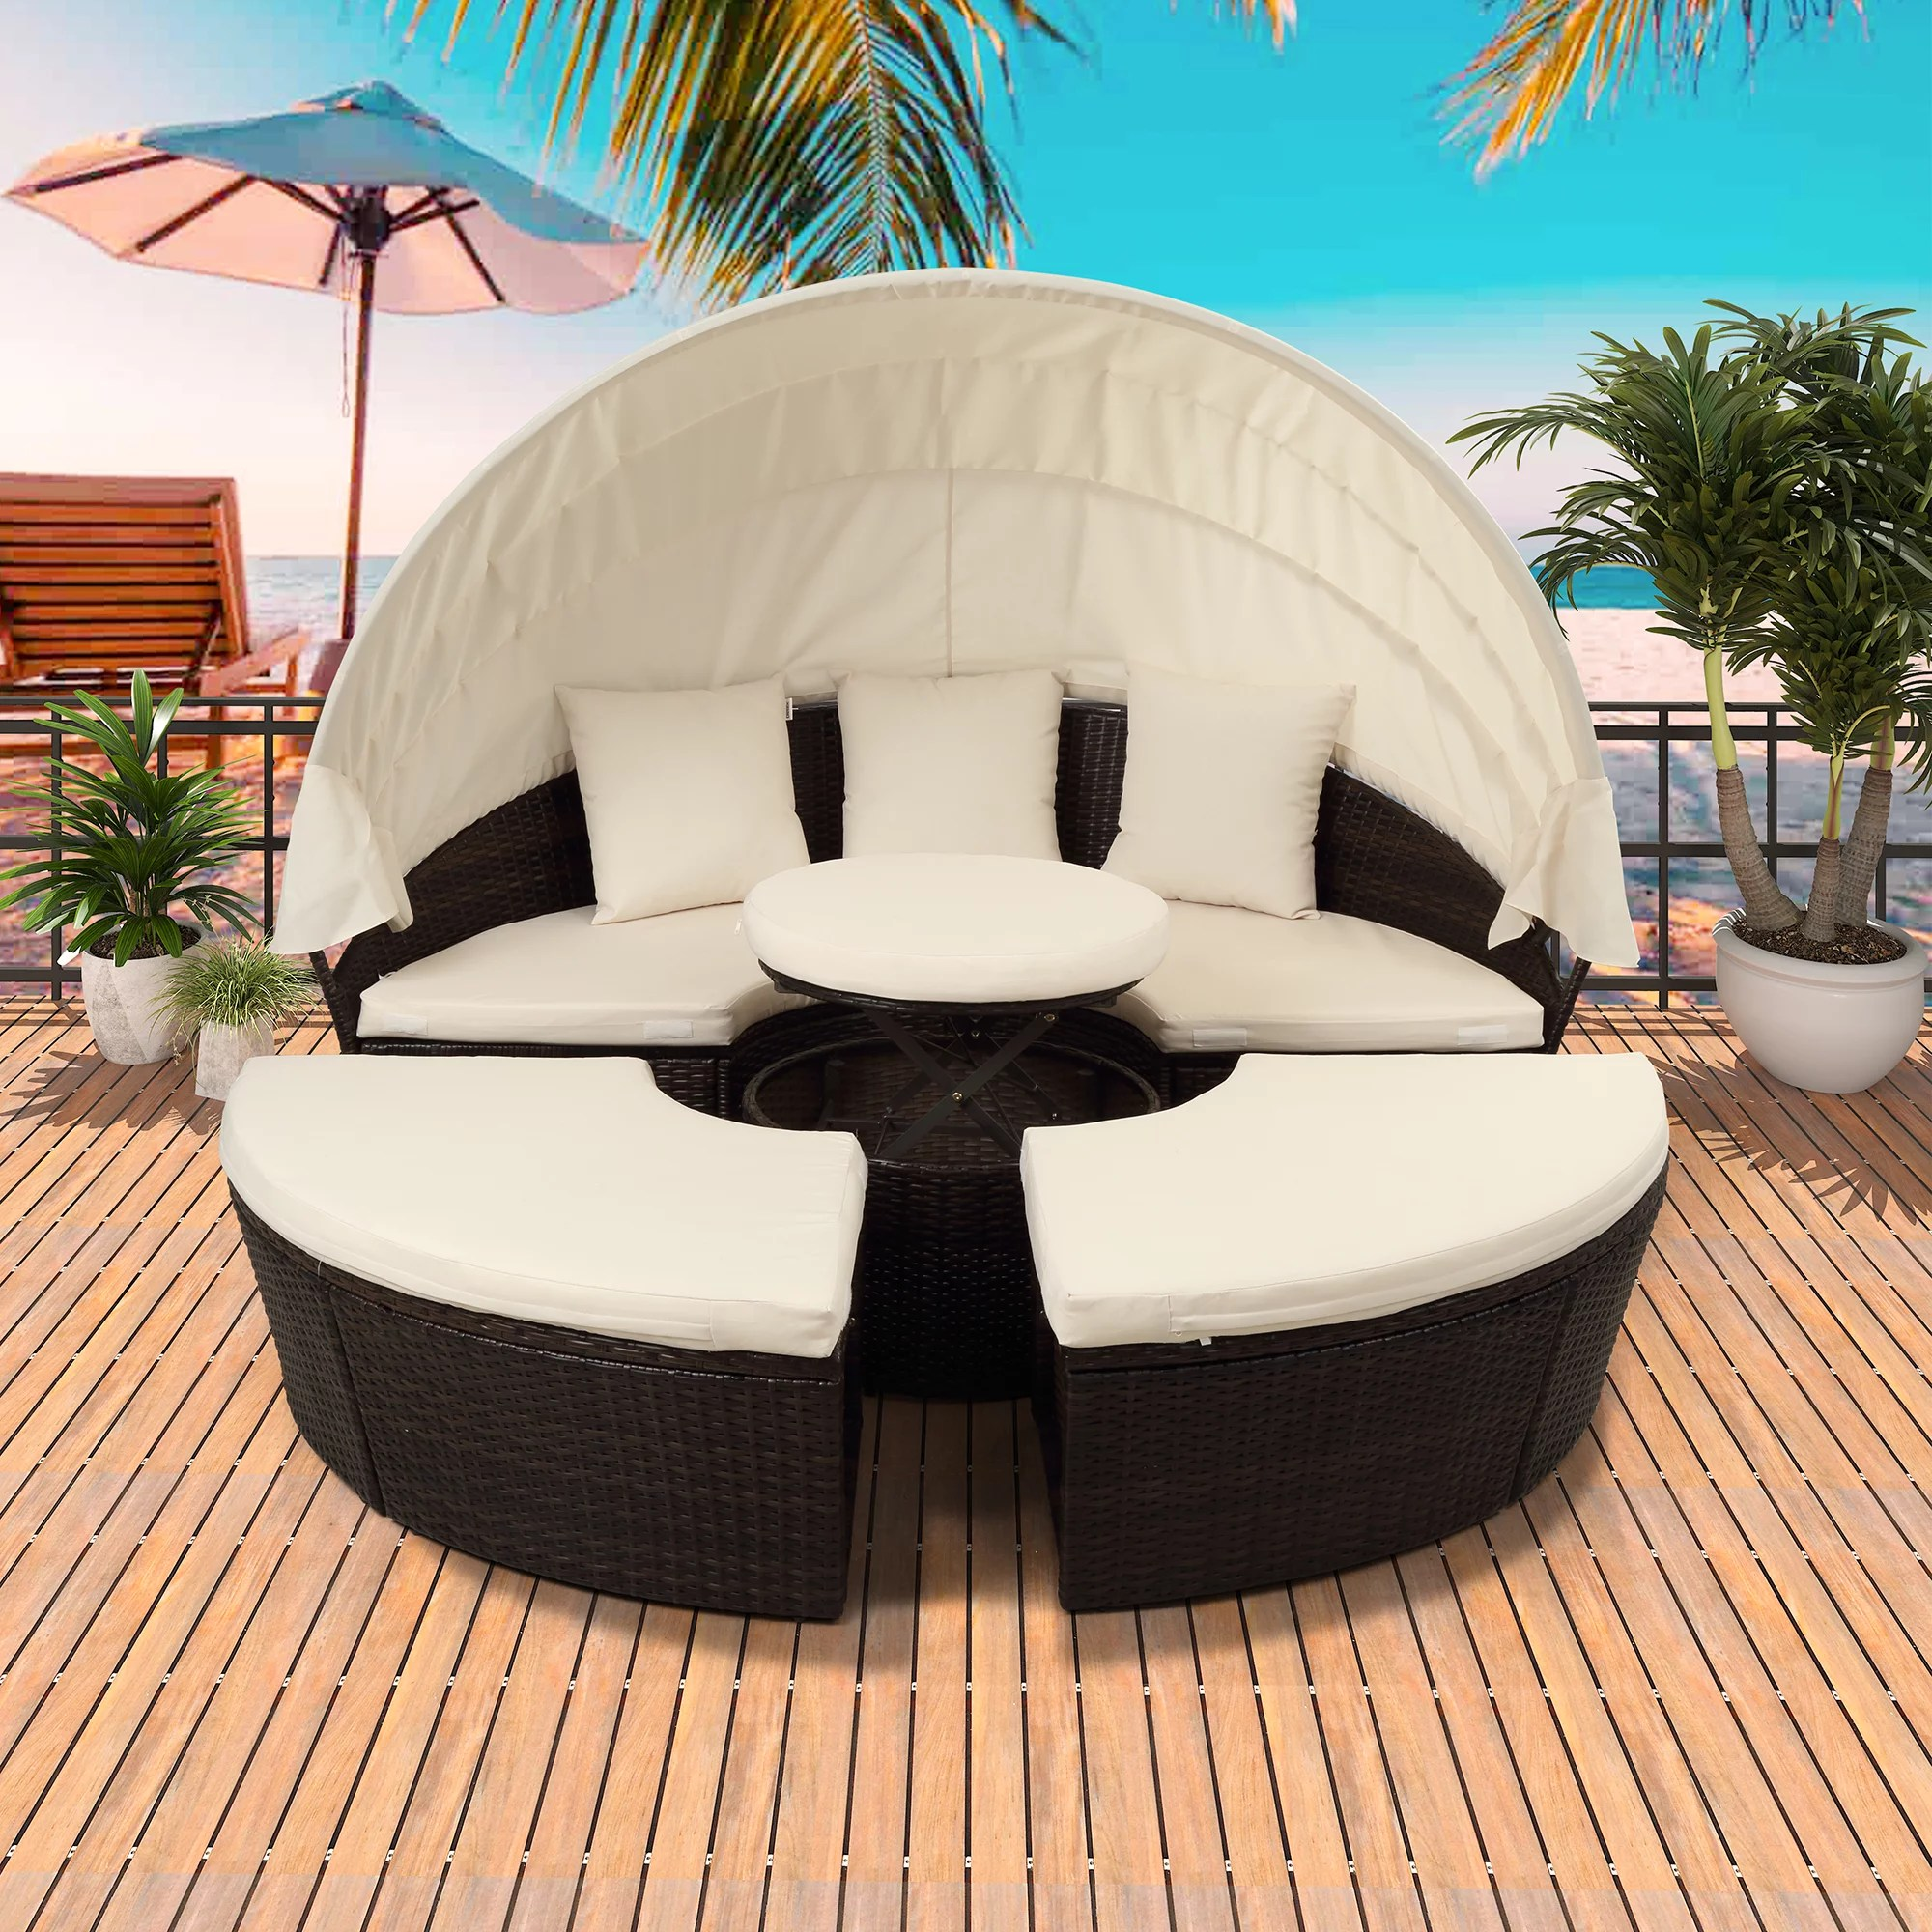 https www walmart com ip patio daybed 5 piece furniture sets round wicker daybed retractable canopy all weather outdoor sectional sofa set cushions backyard porch garden pool 729277585